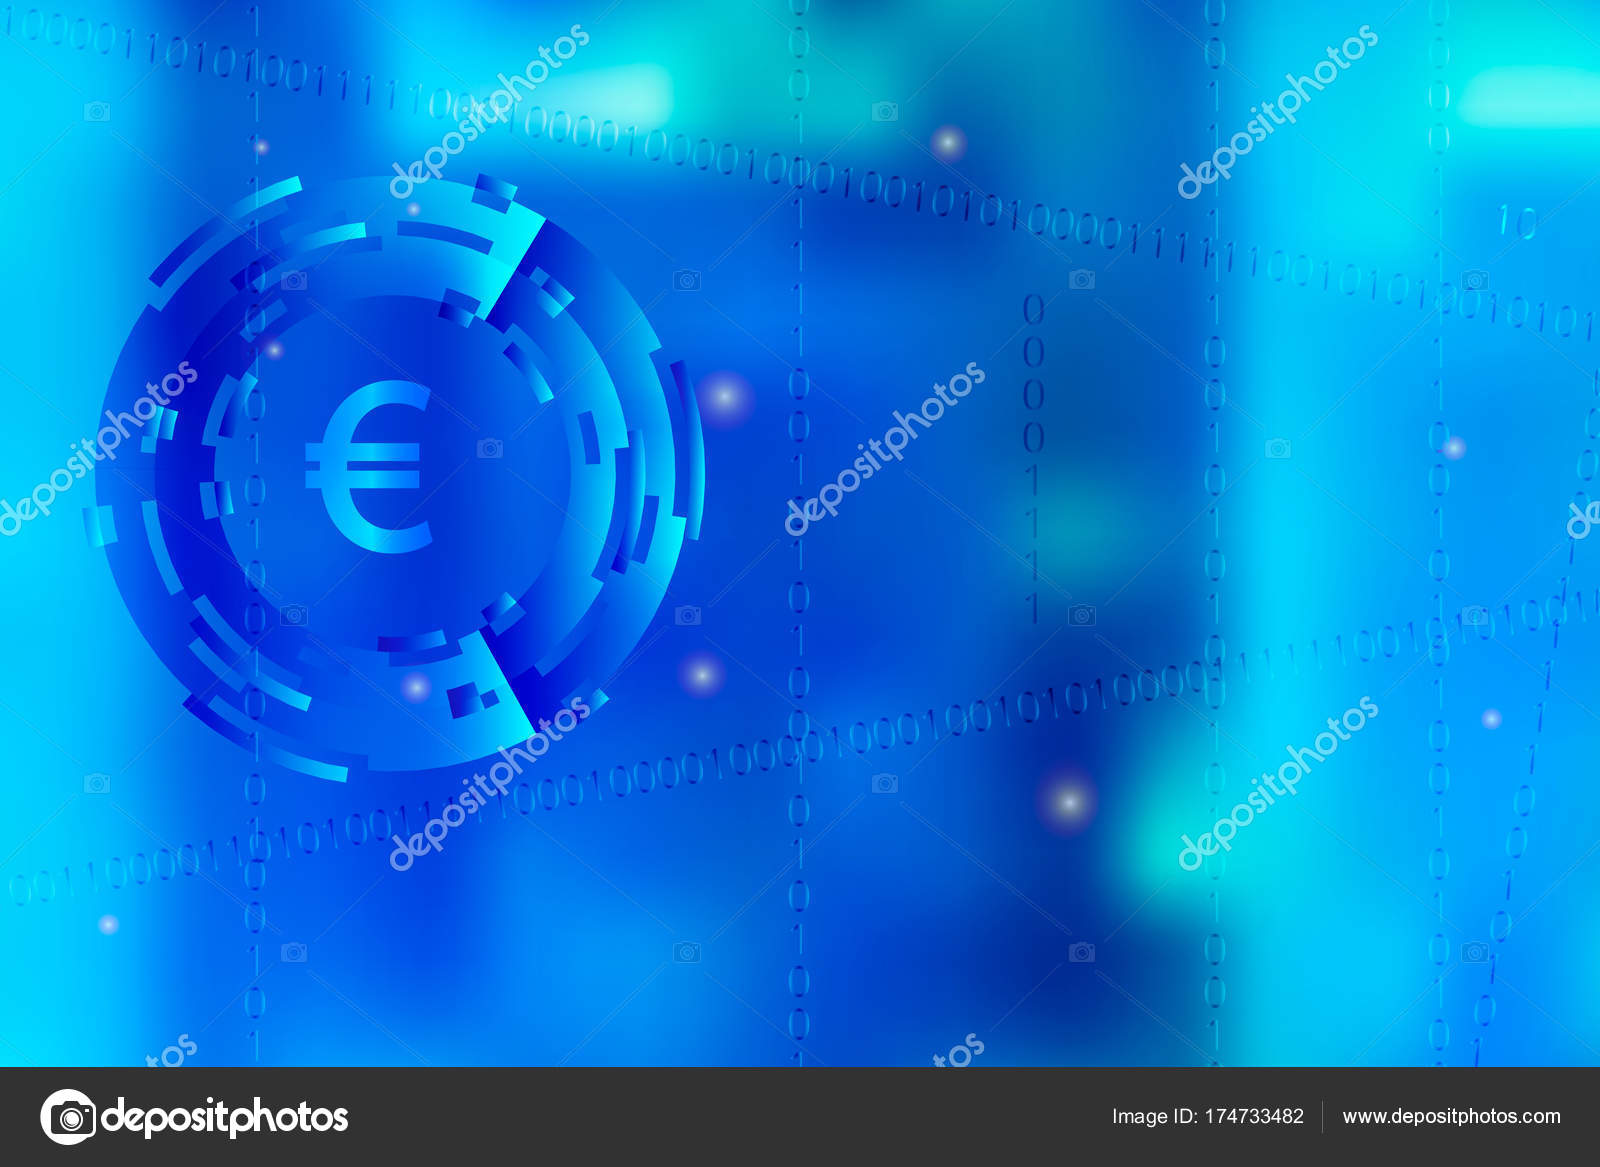 Vector Picture With Blurred Background On For Illustration Of